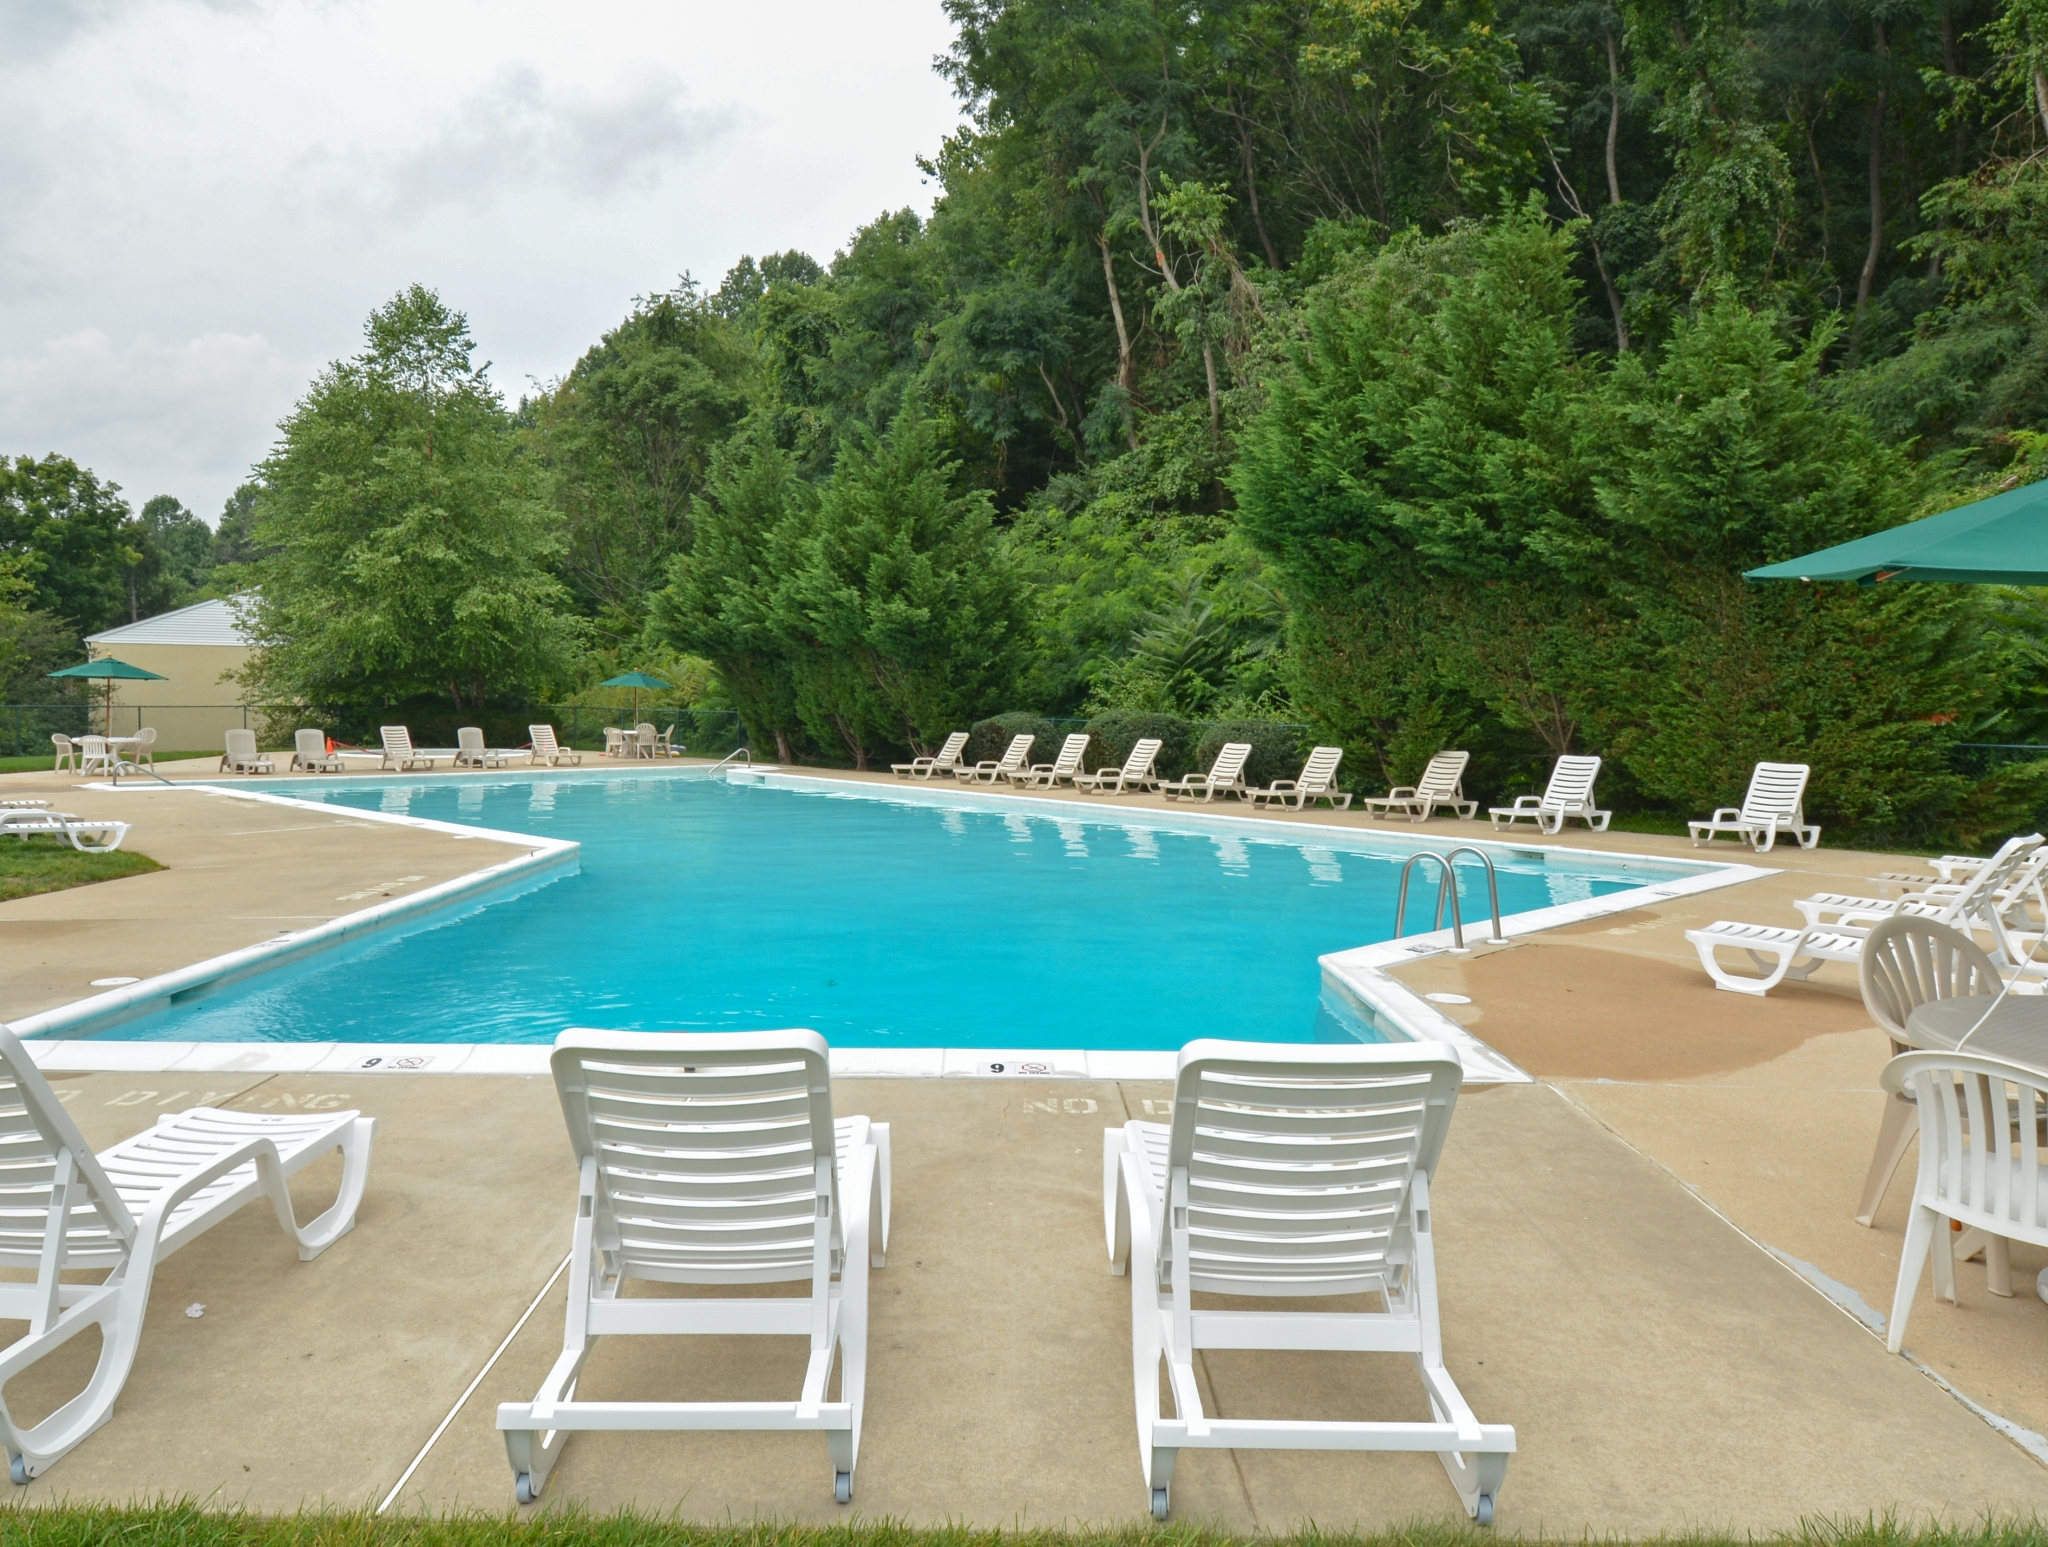 Year Round Swimming Pool | Apartment in Downingtown, PA | Norwood House Apartments